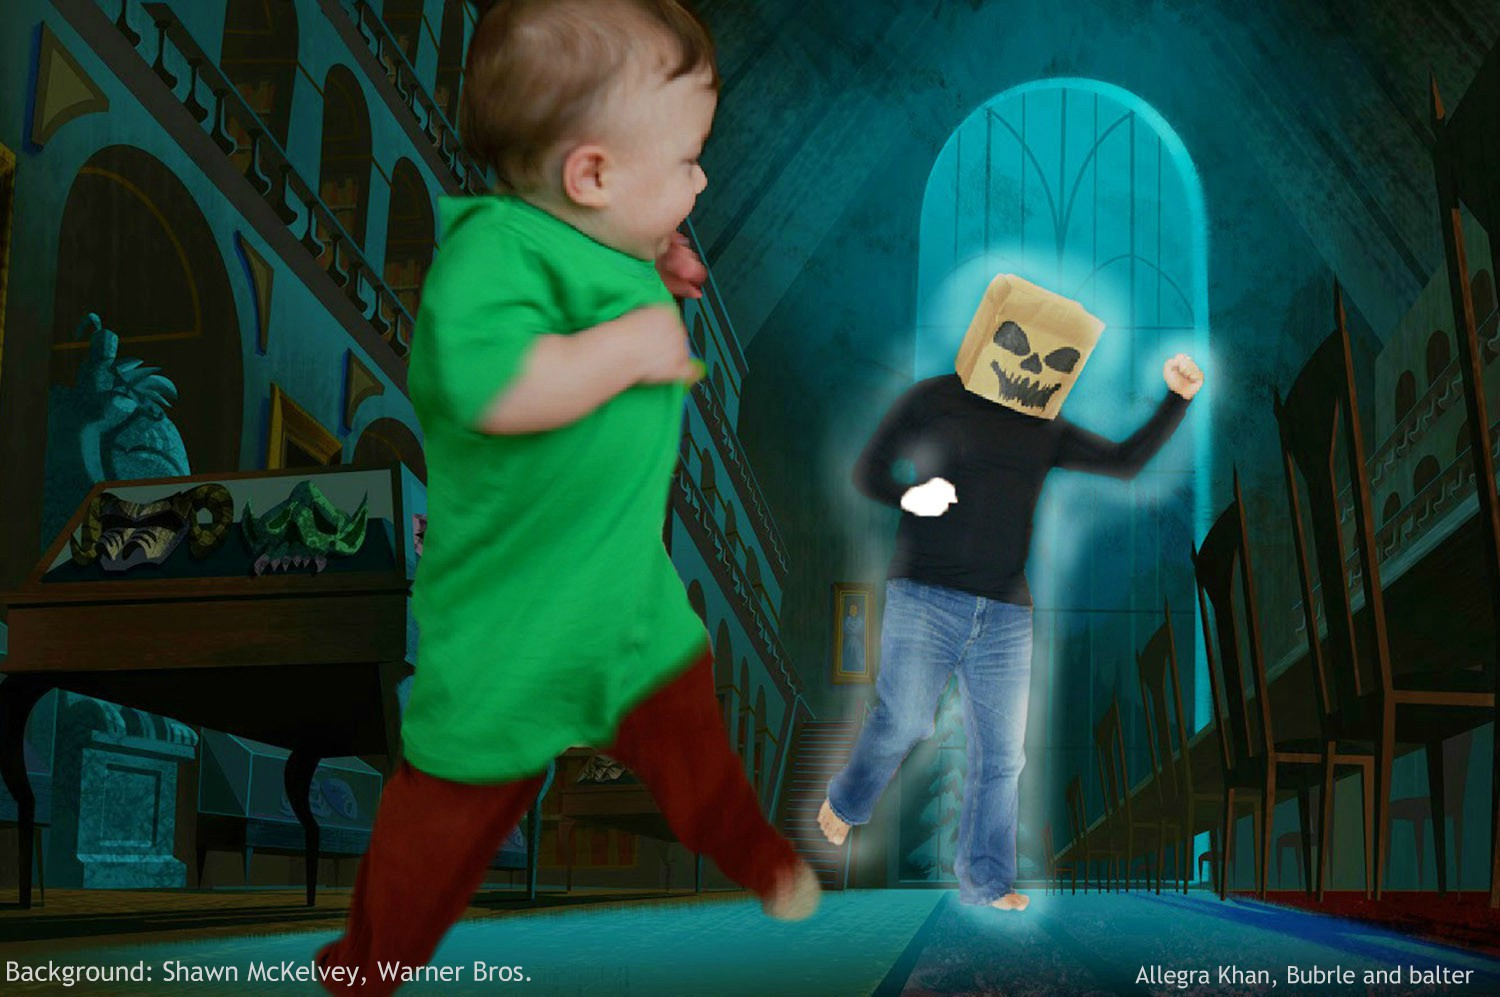 Scooby-Doo-and-Shaggy-5-Costume-Baby-Photoshoot-Burble-and-Balter.jpg